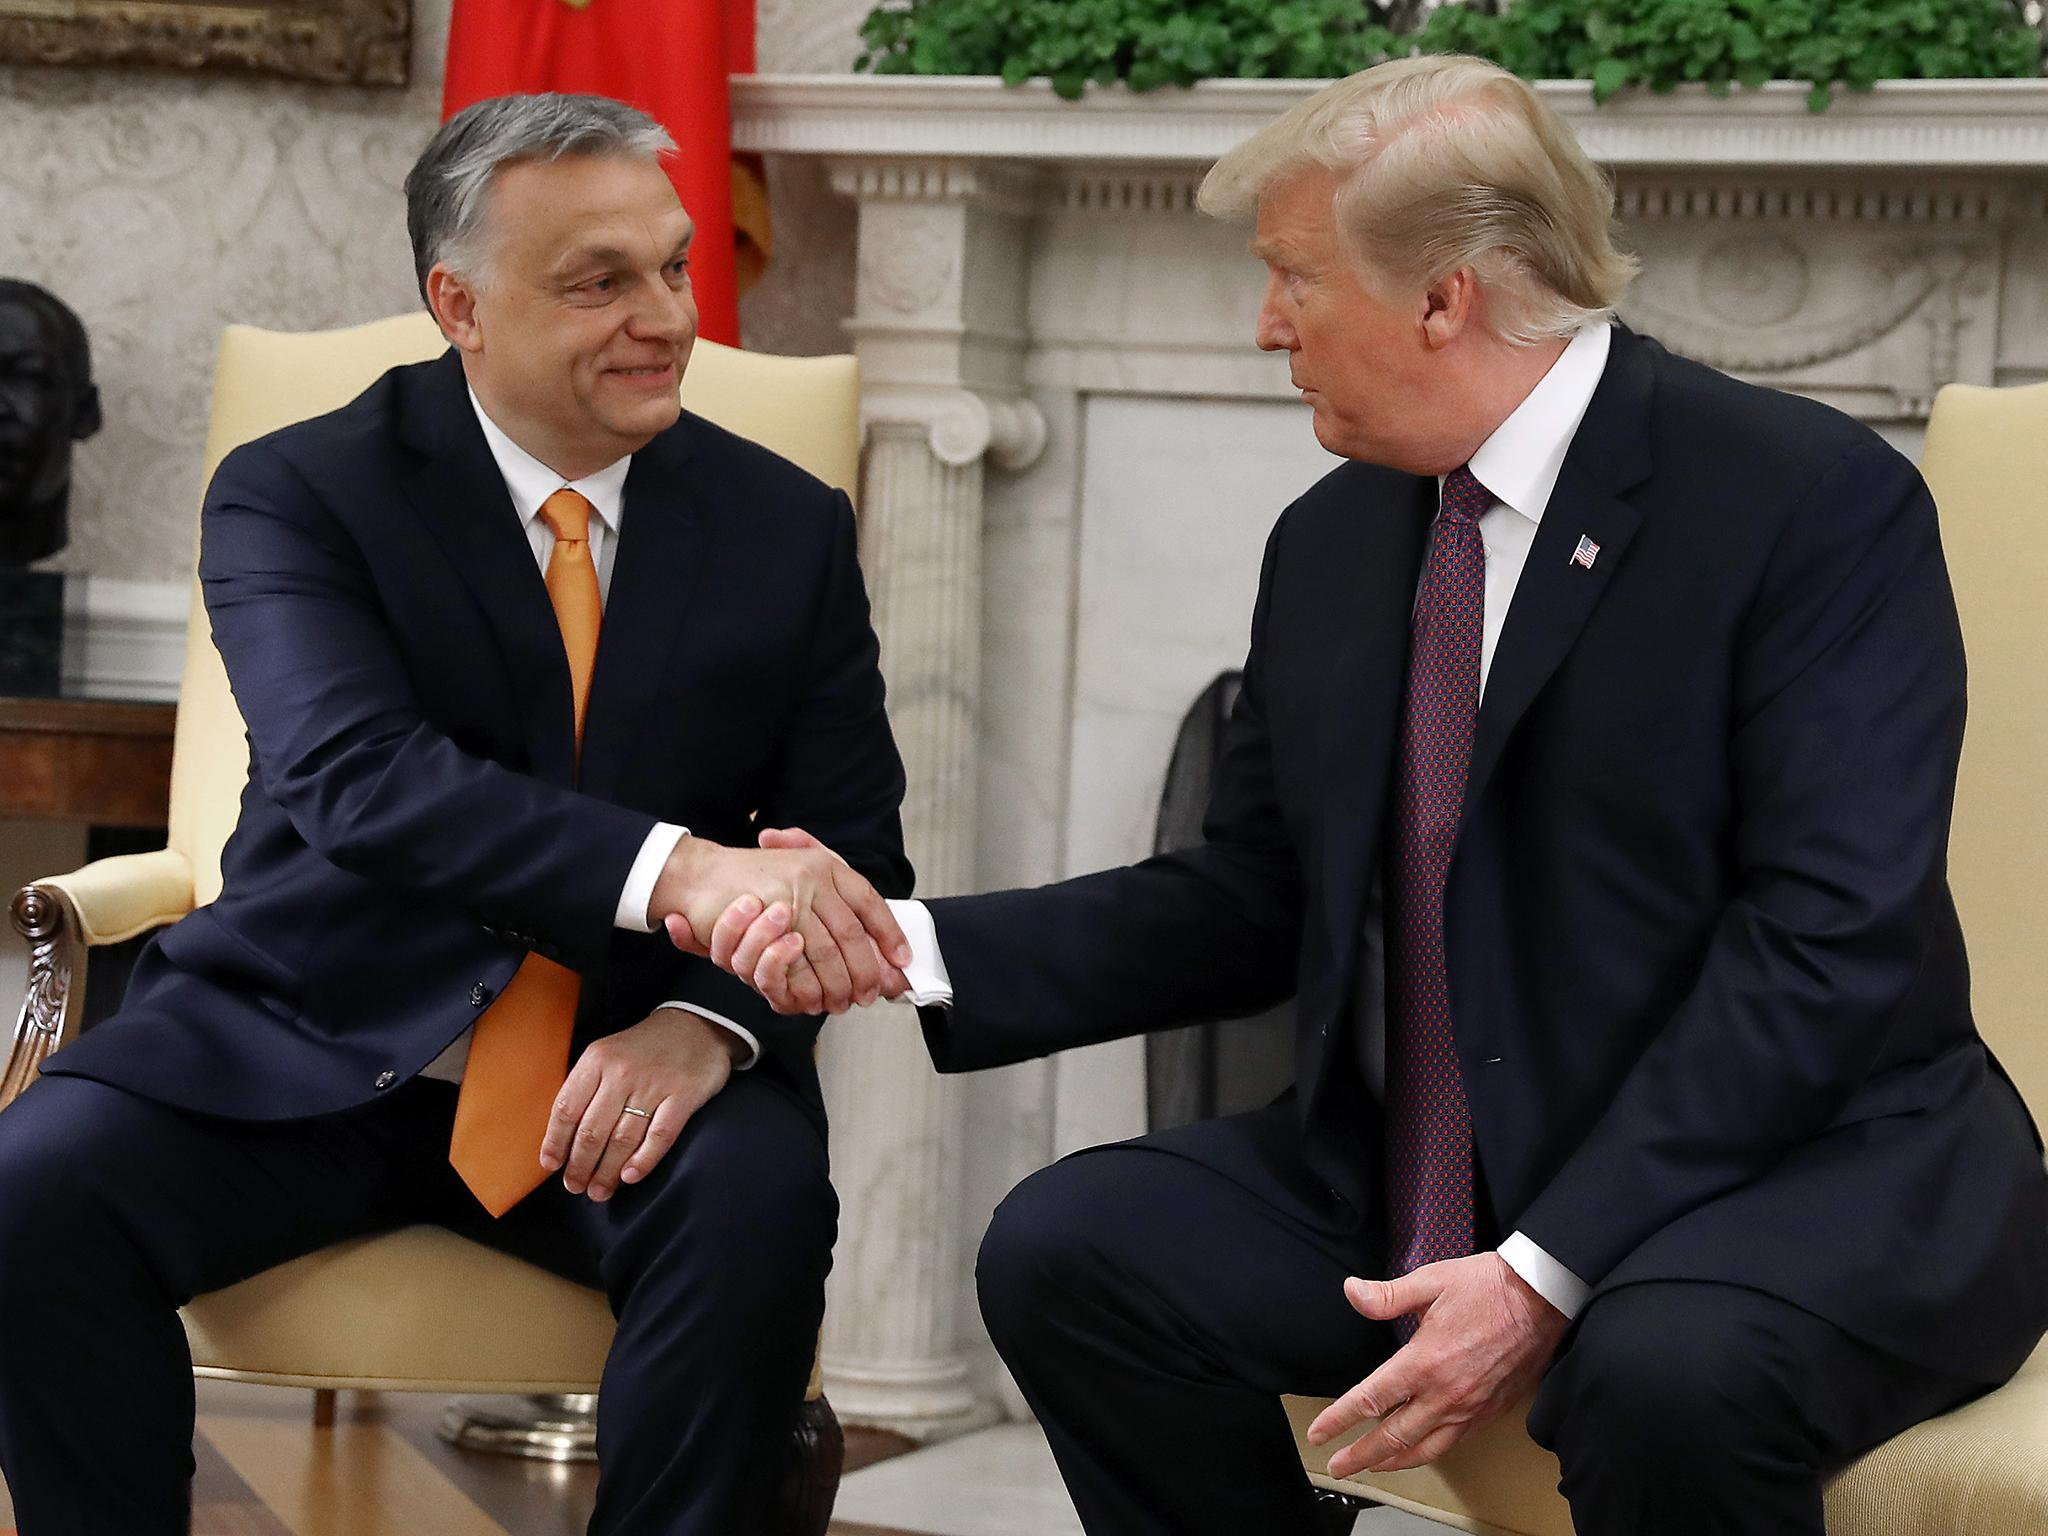 Hungary's far-right leader gave Trump harsh criticism of Ukraine day…